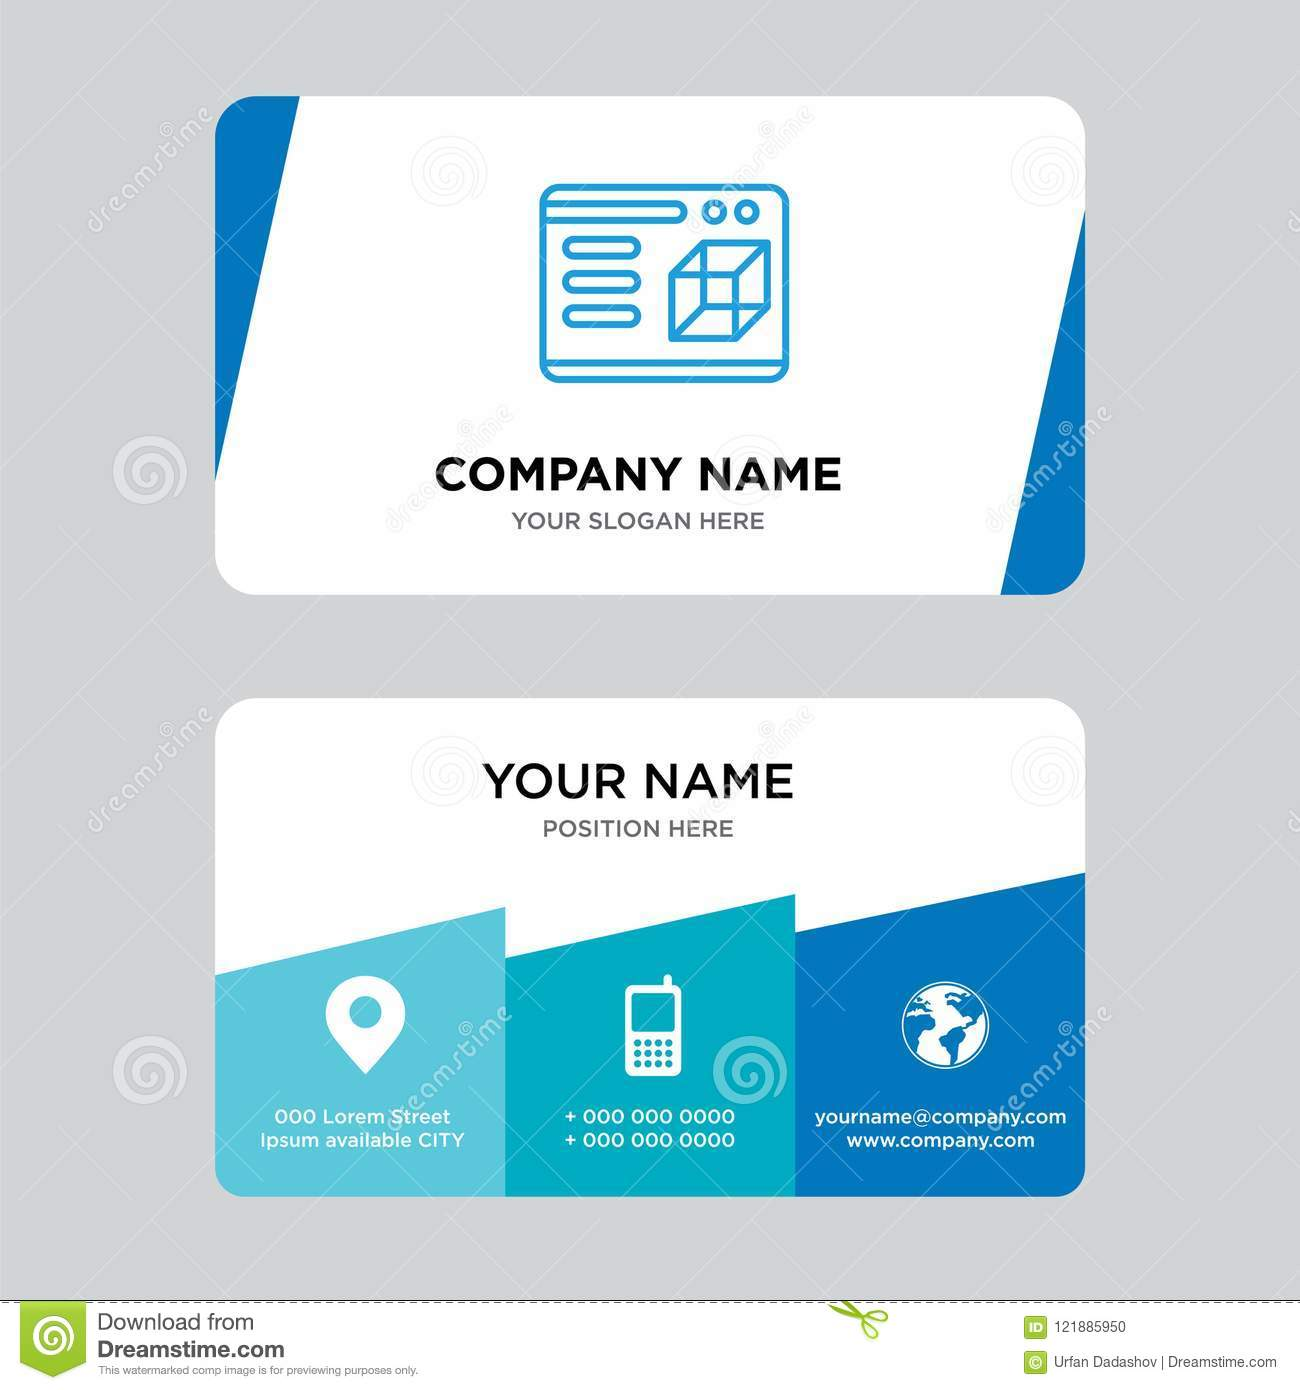 3d Printing Business Card Design Template Visiting For Your Company